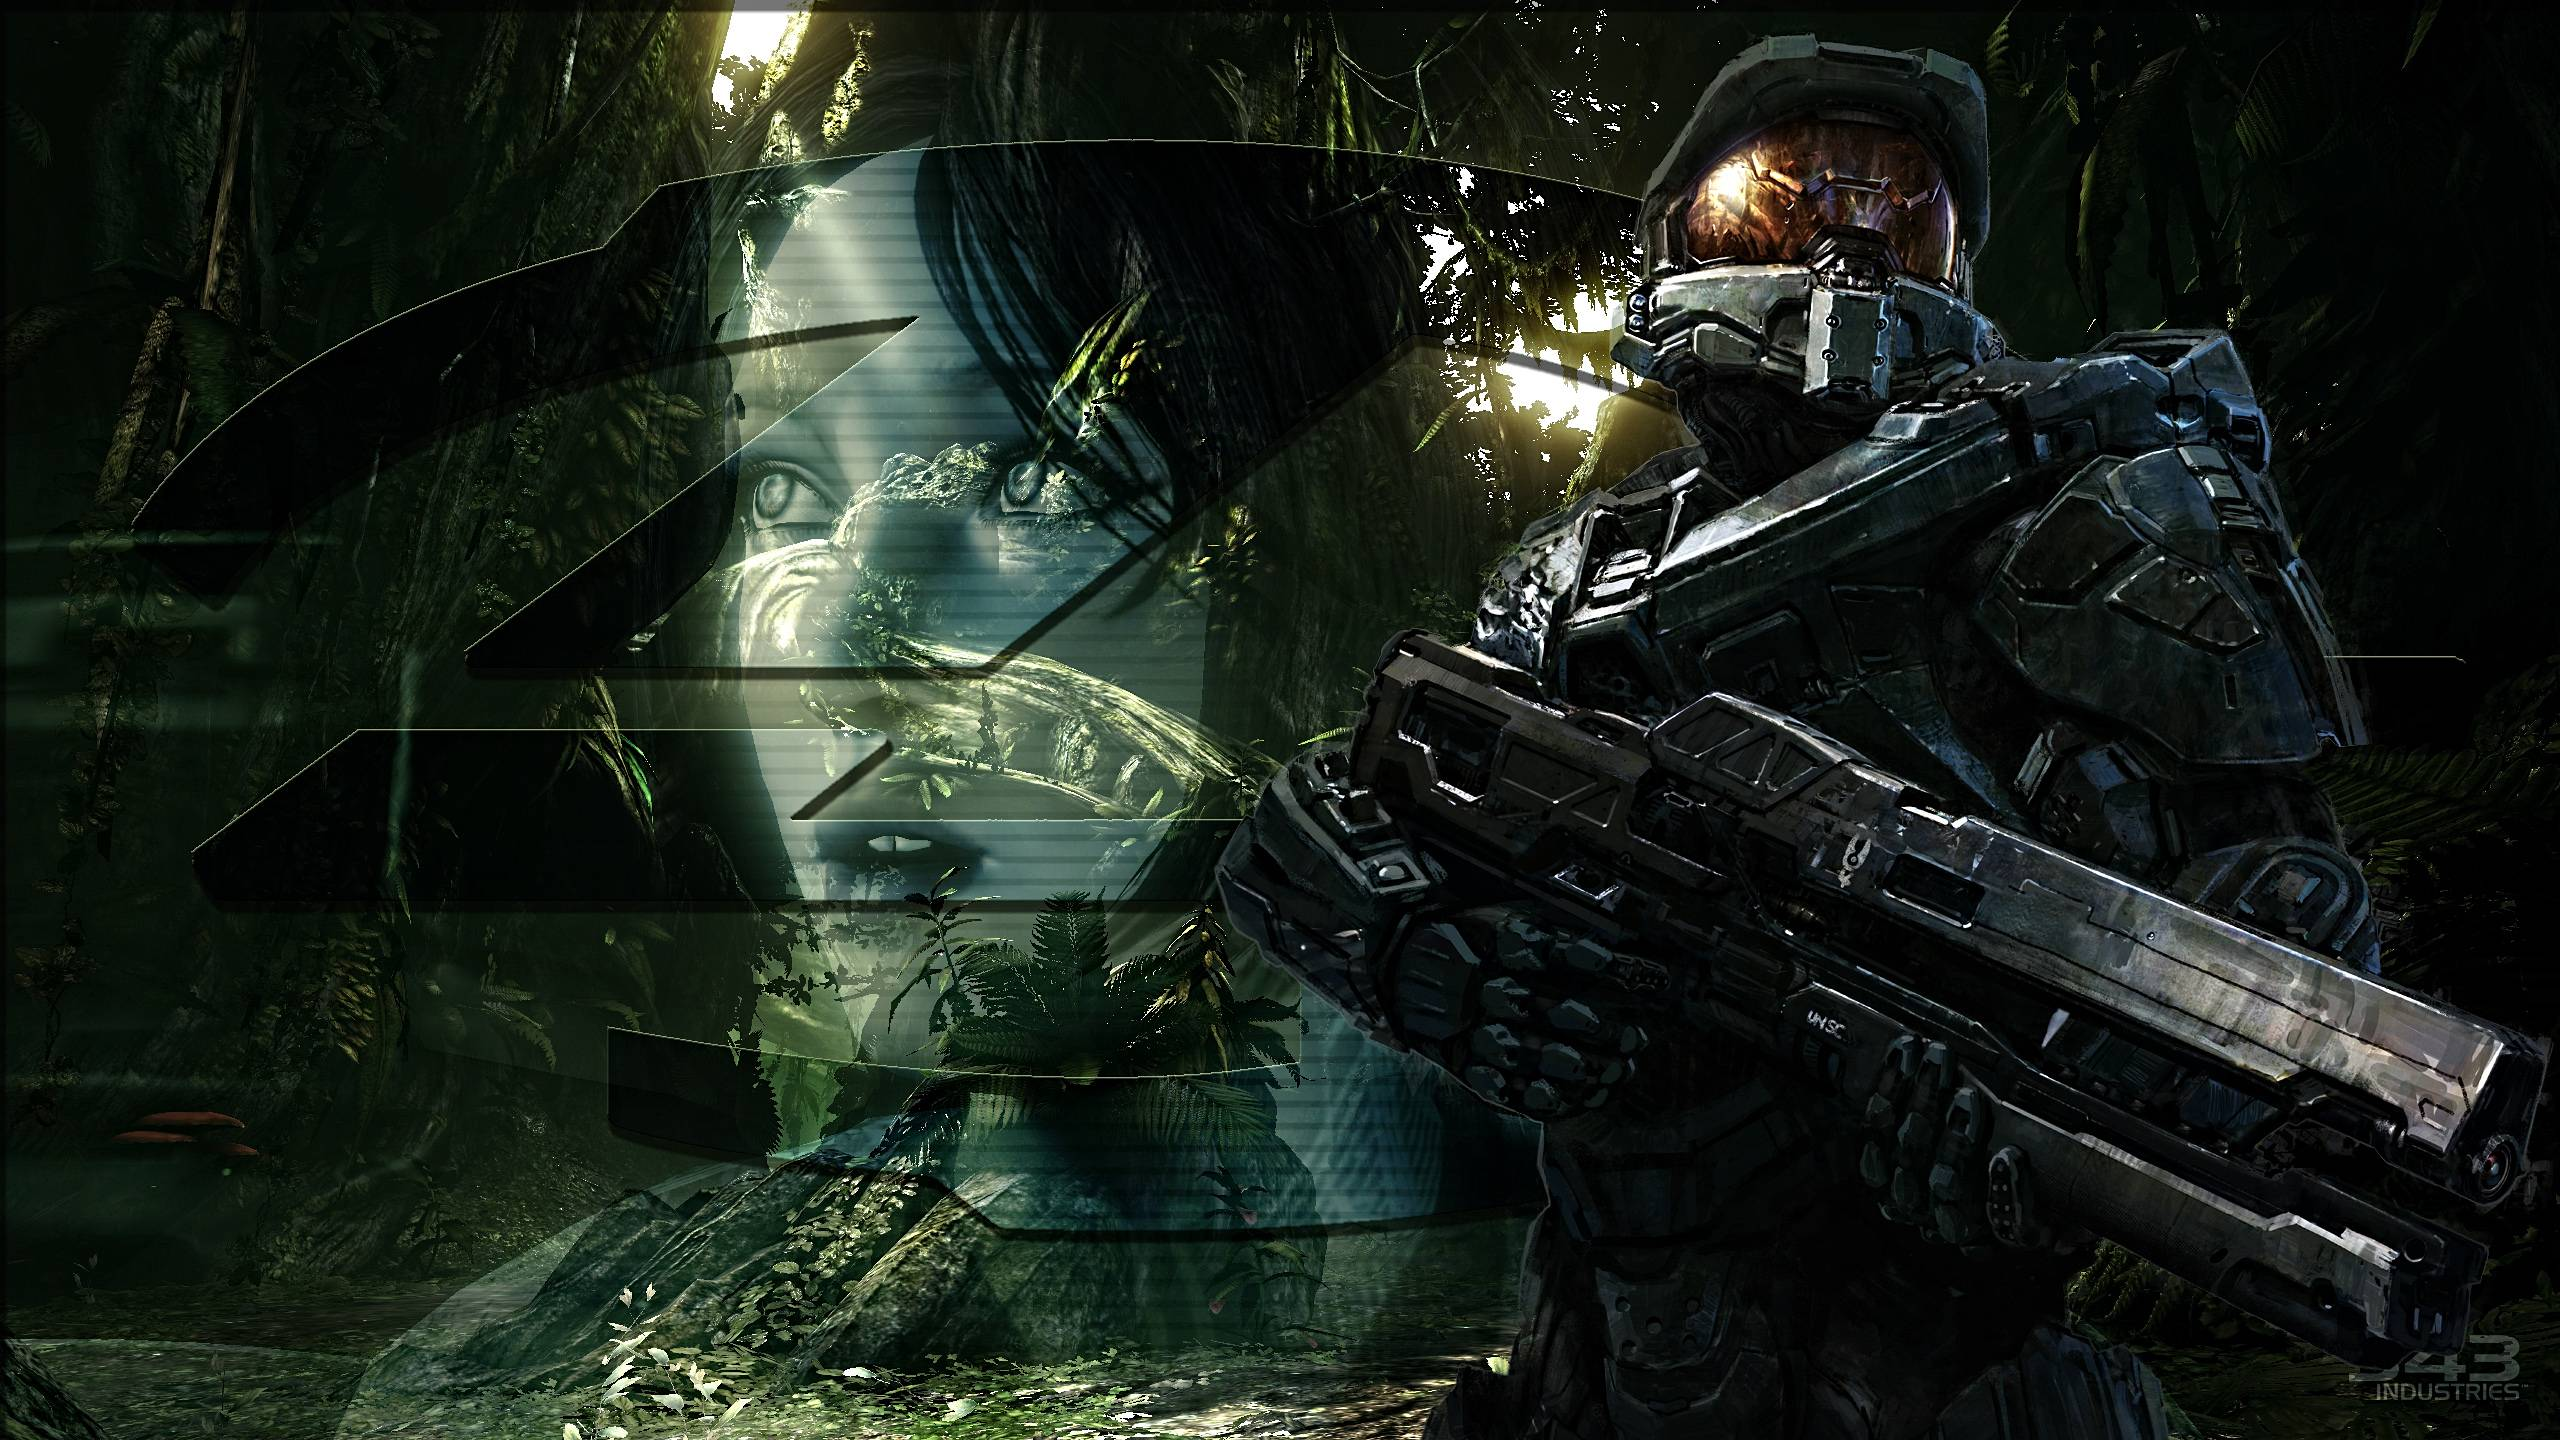 Halo 4 Backgrounds HD 2560x1440